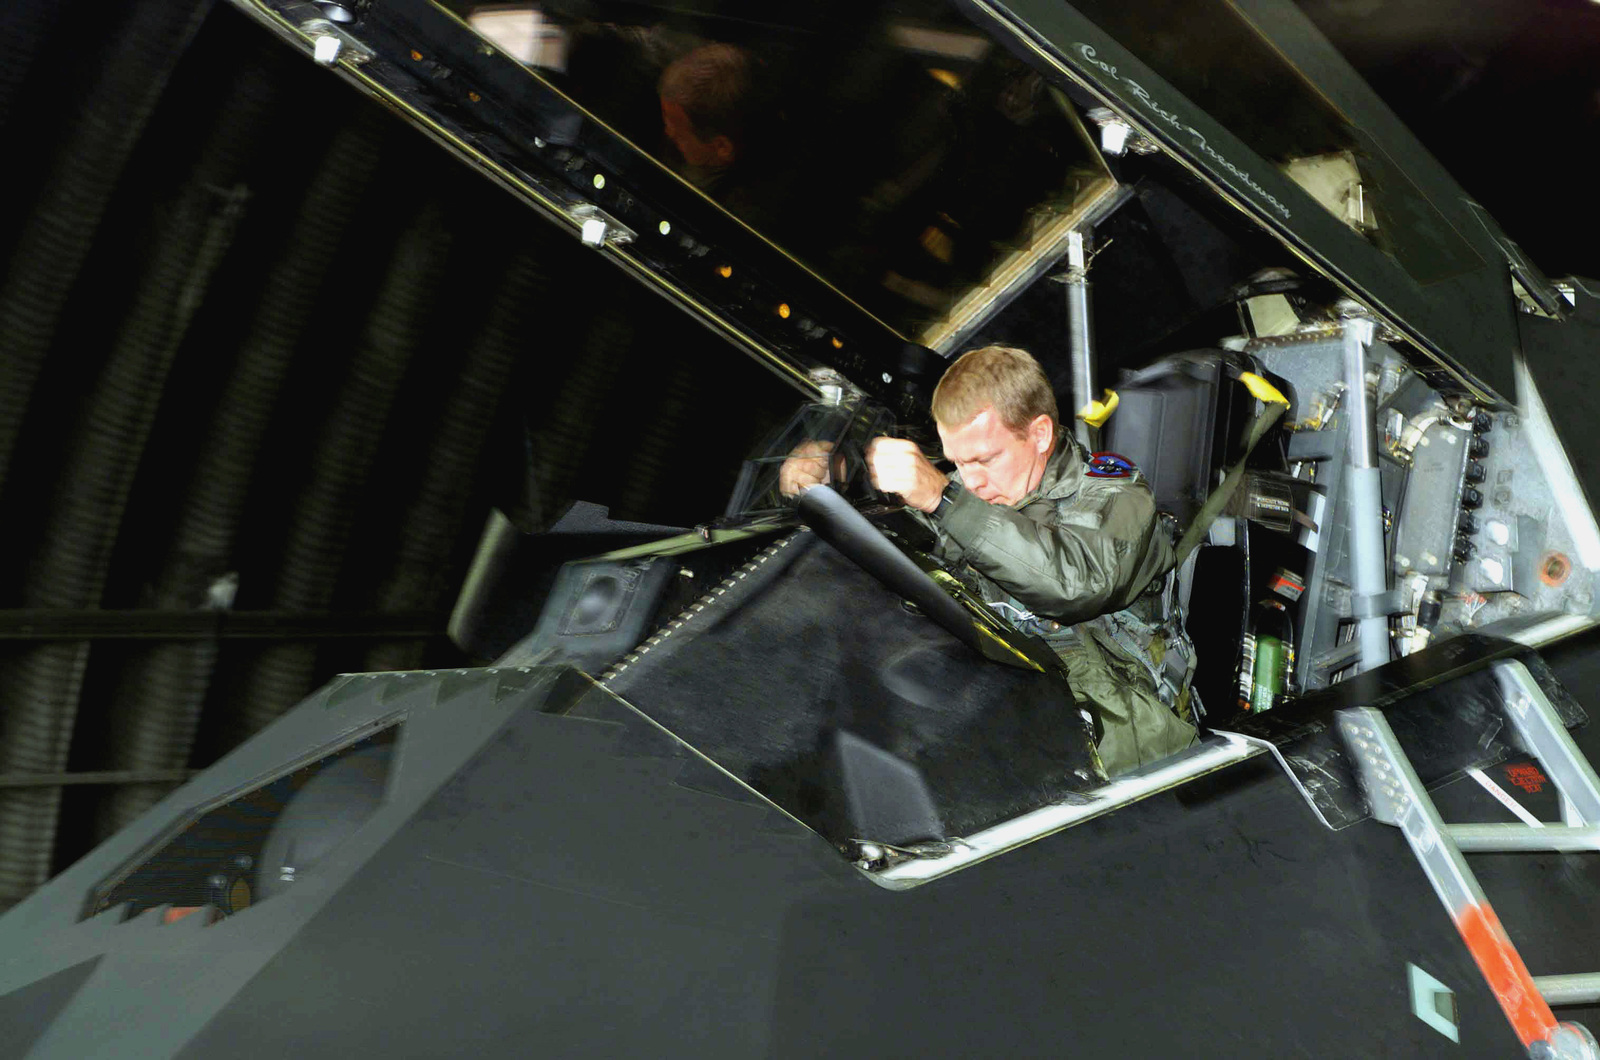 US Air Force (USAF) Major (MAJ) James Johnson, F-117A Nighthawk aircraft Pilot assigned to the 9th Fighter Squadron (FS), climbs into the cockpit of his aircraft for a training mission at Spangdahlem Air Base (AB), Germany